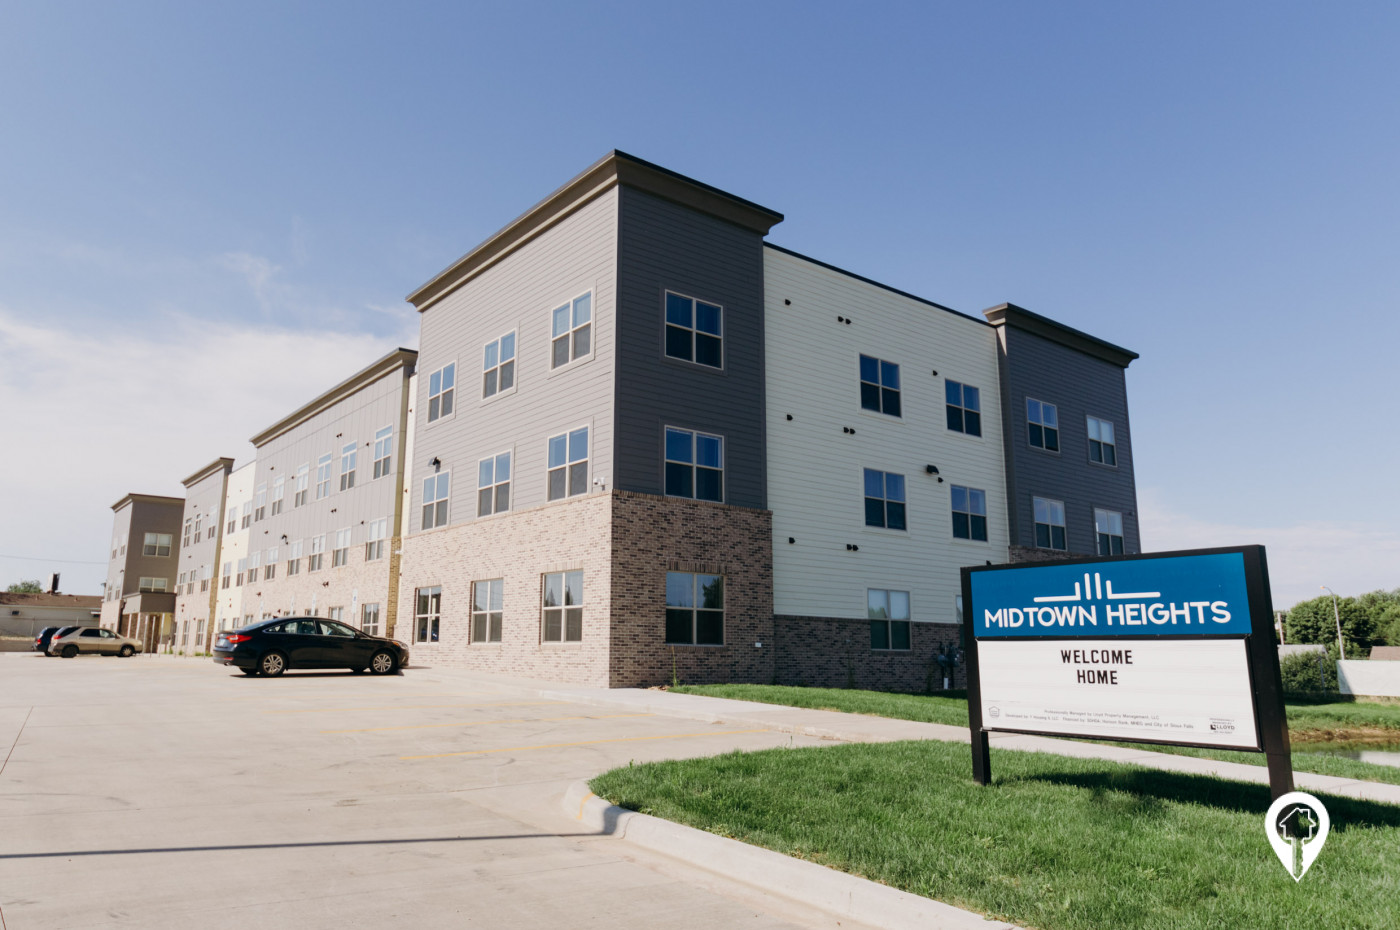 Midtown Heights Apartments